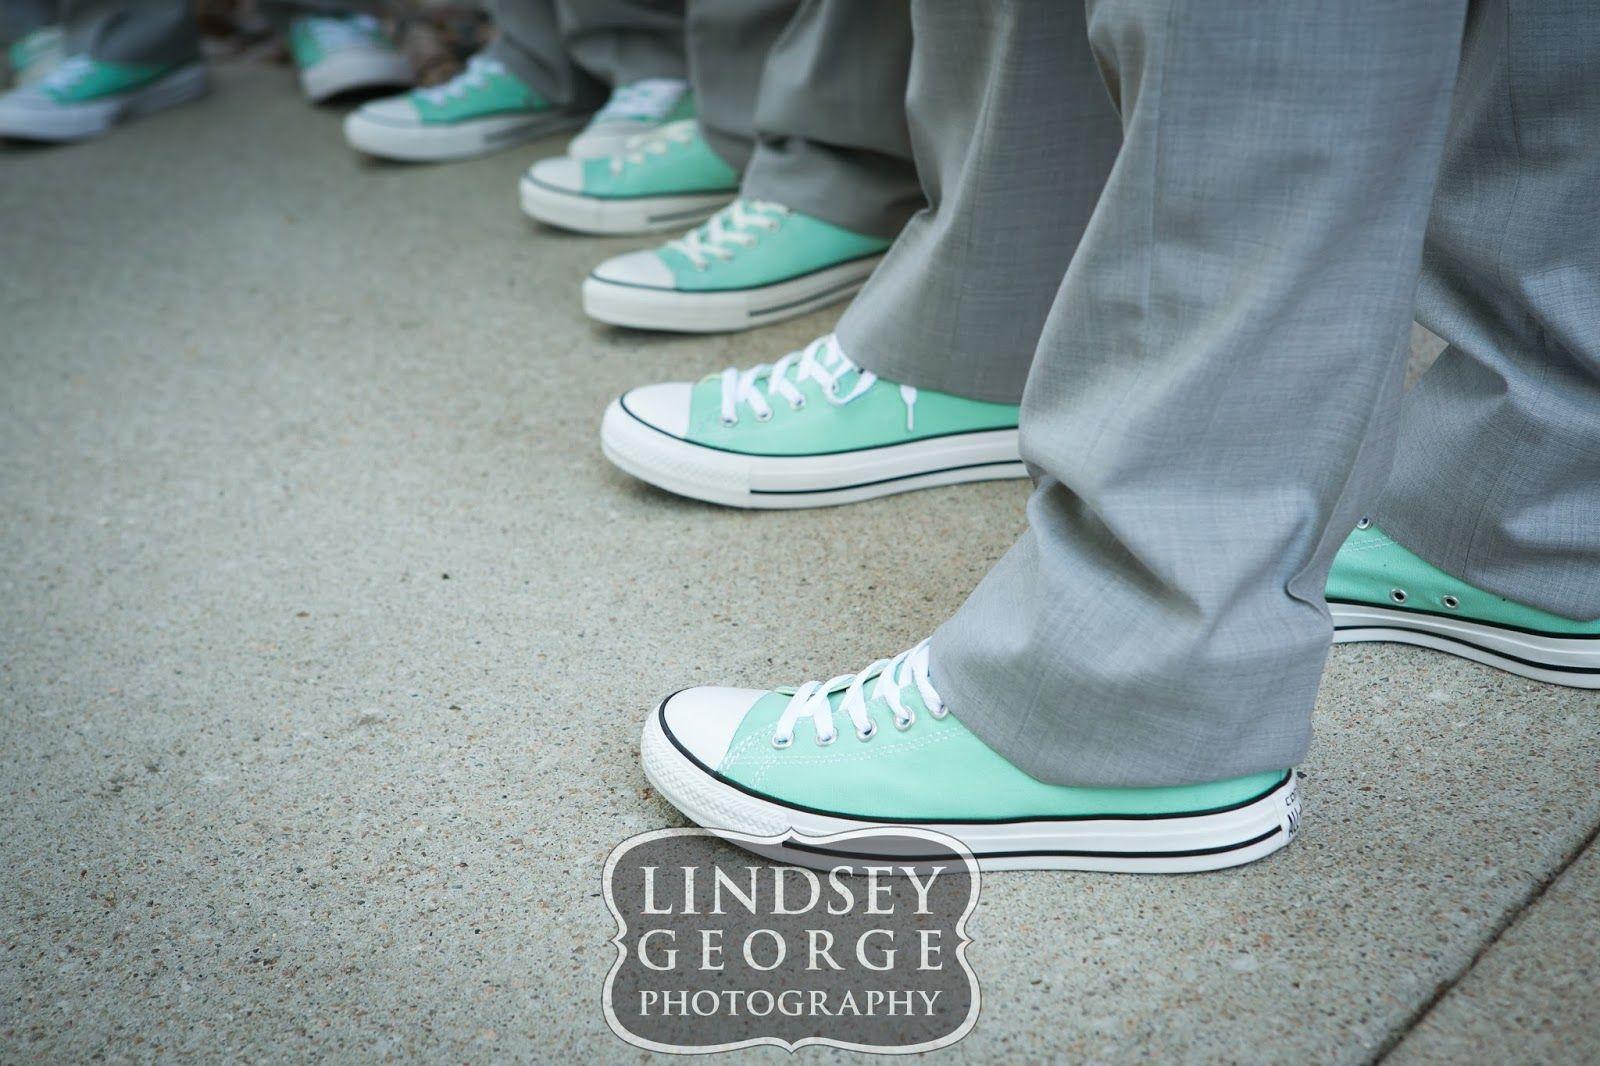 0701ced5cf0b Chucks Chuck Taylor Converse groom   groomsmen wedding shoes Fremont Opera  House Nebraska - click to view full gallery